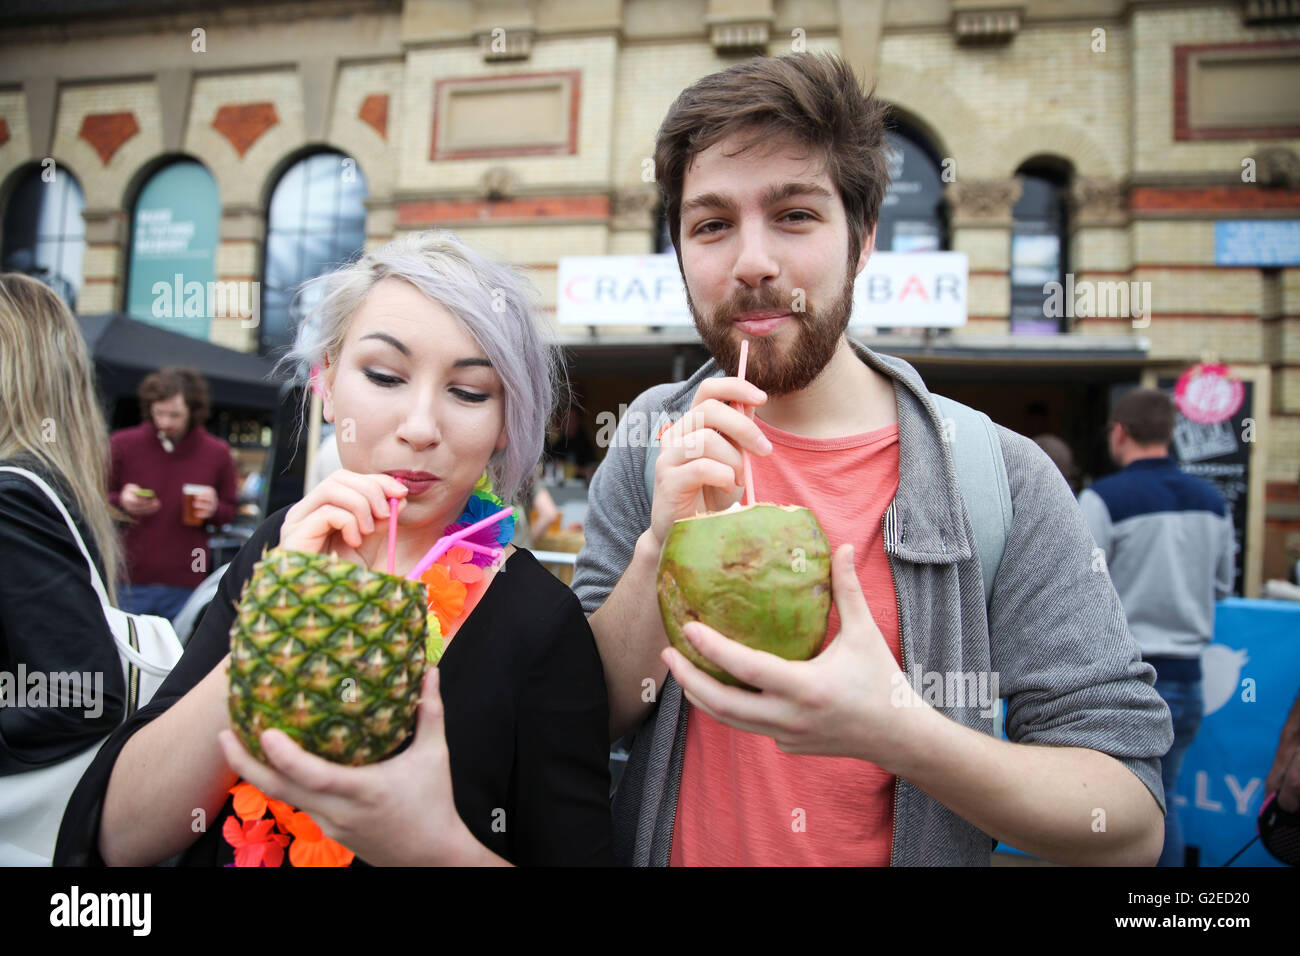 Alexander Palace, North London. 29 May 2016 - Thousands attend the summer Street Food & Beer Festival in Alexander - Stock Image